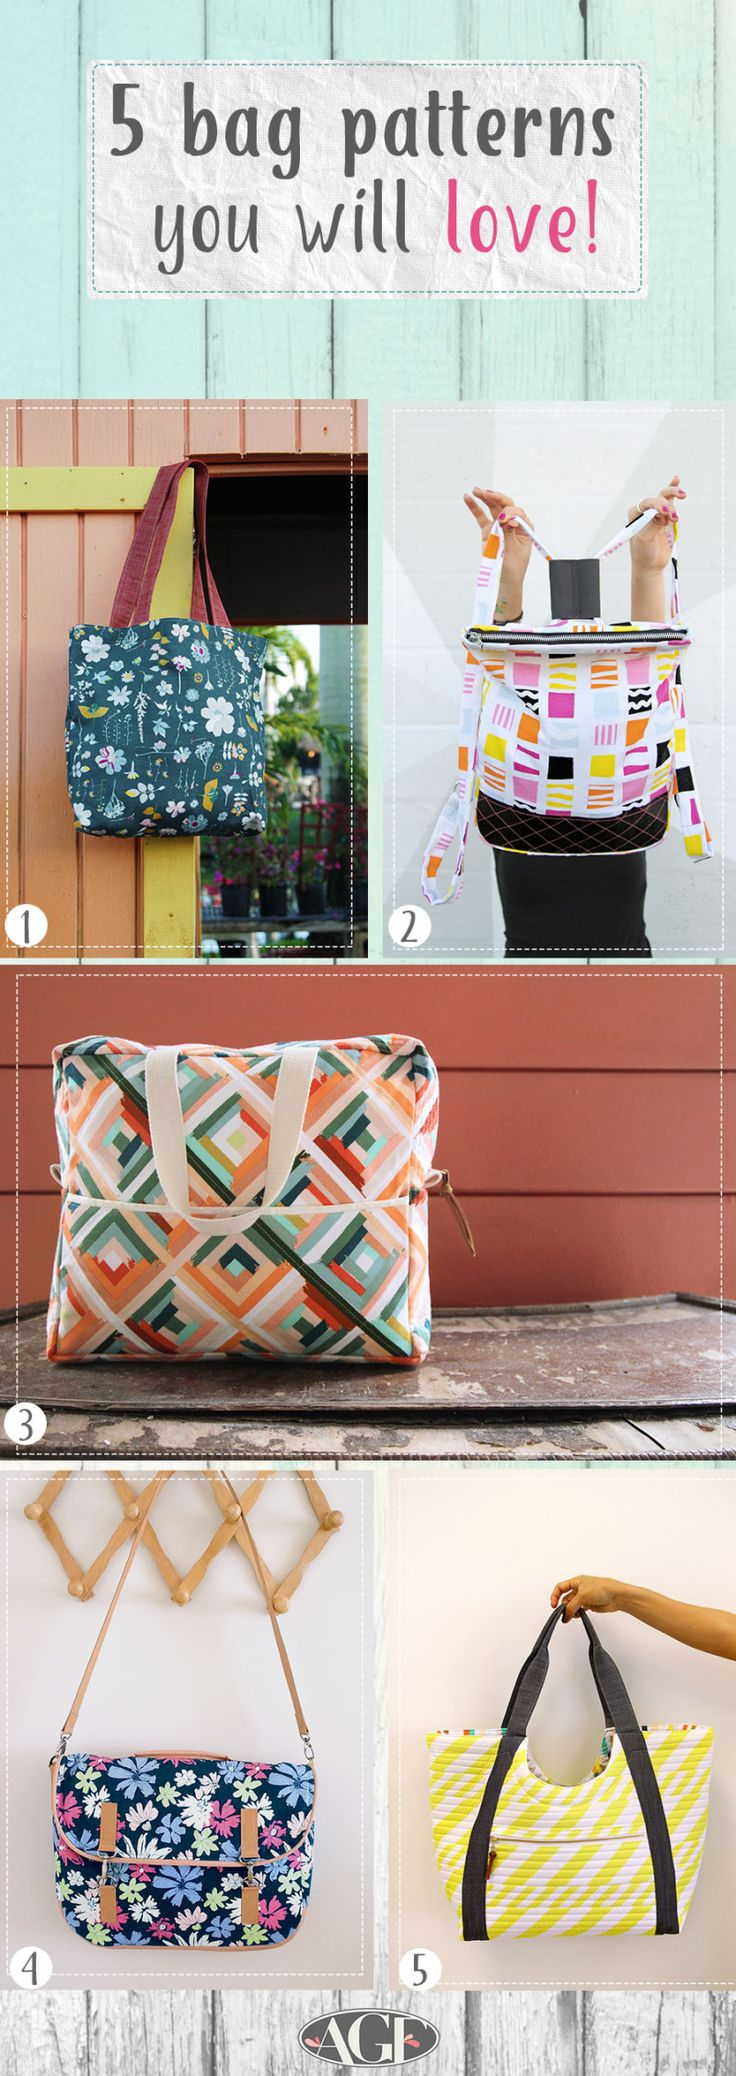 5 bag patterns you will love made with Canvas fabric!